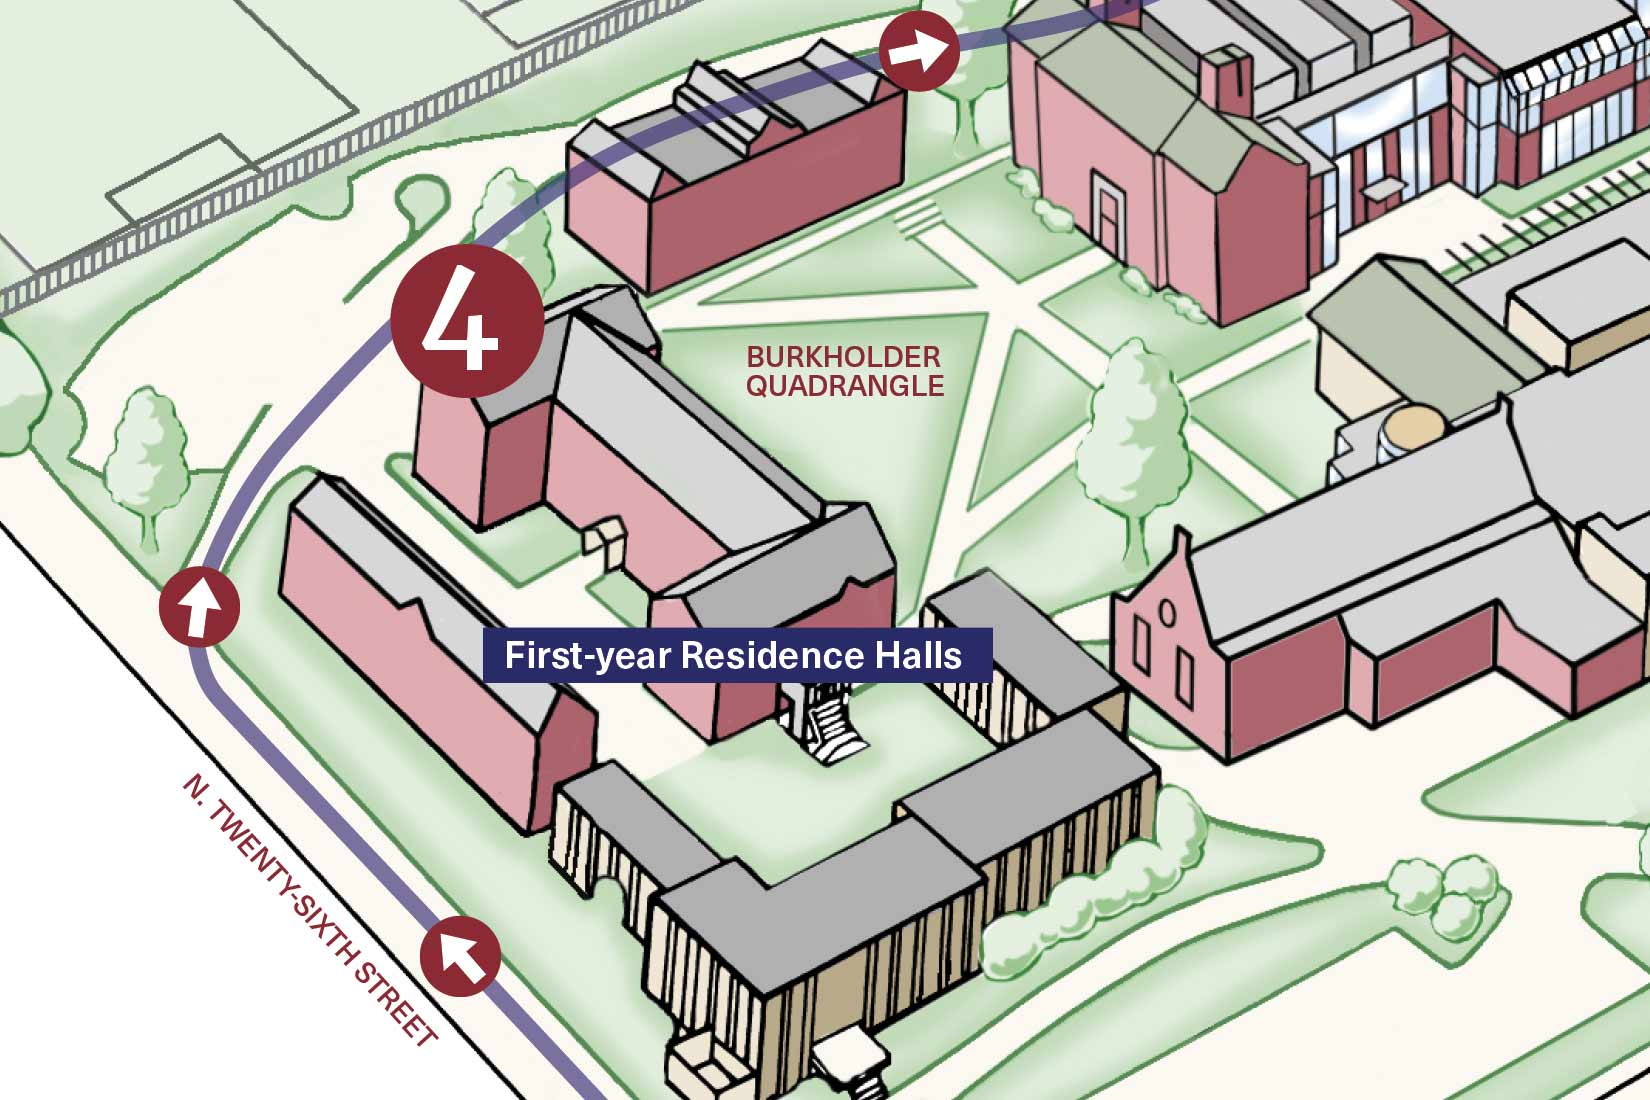 First-year Residence Halls driving tour stop